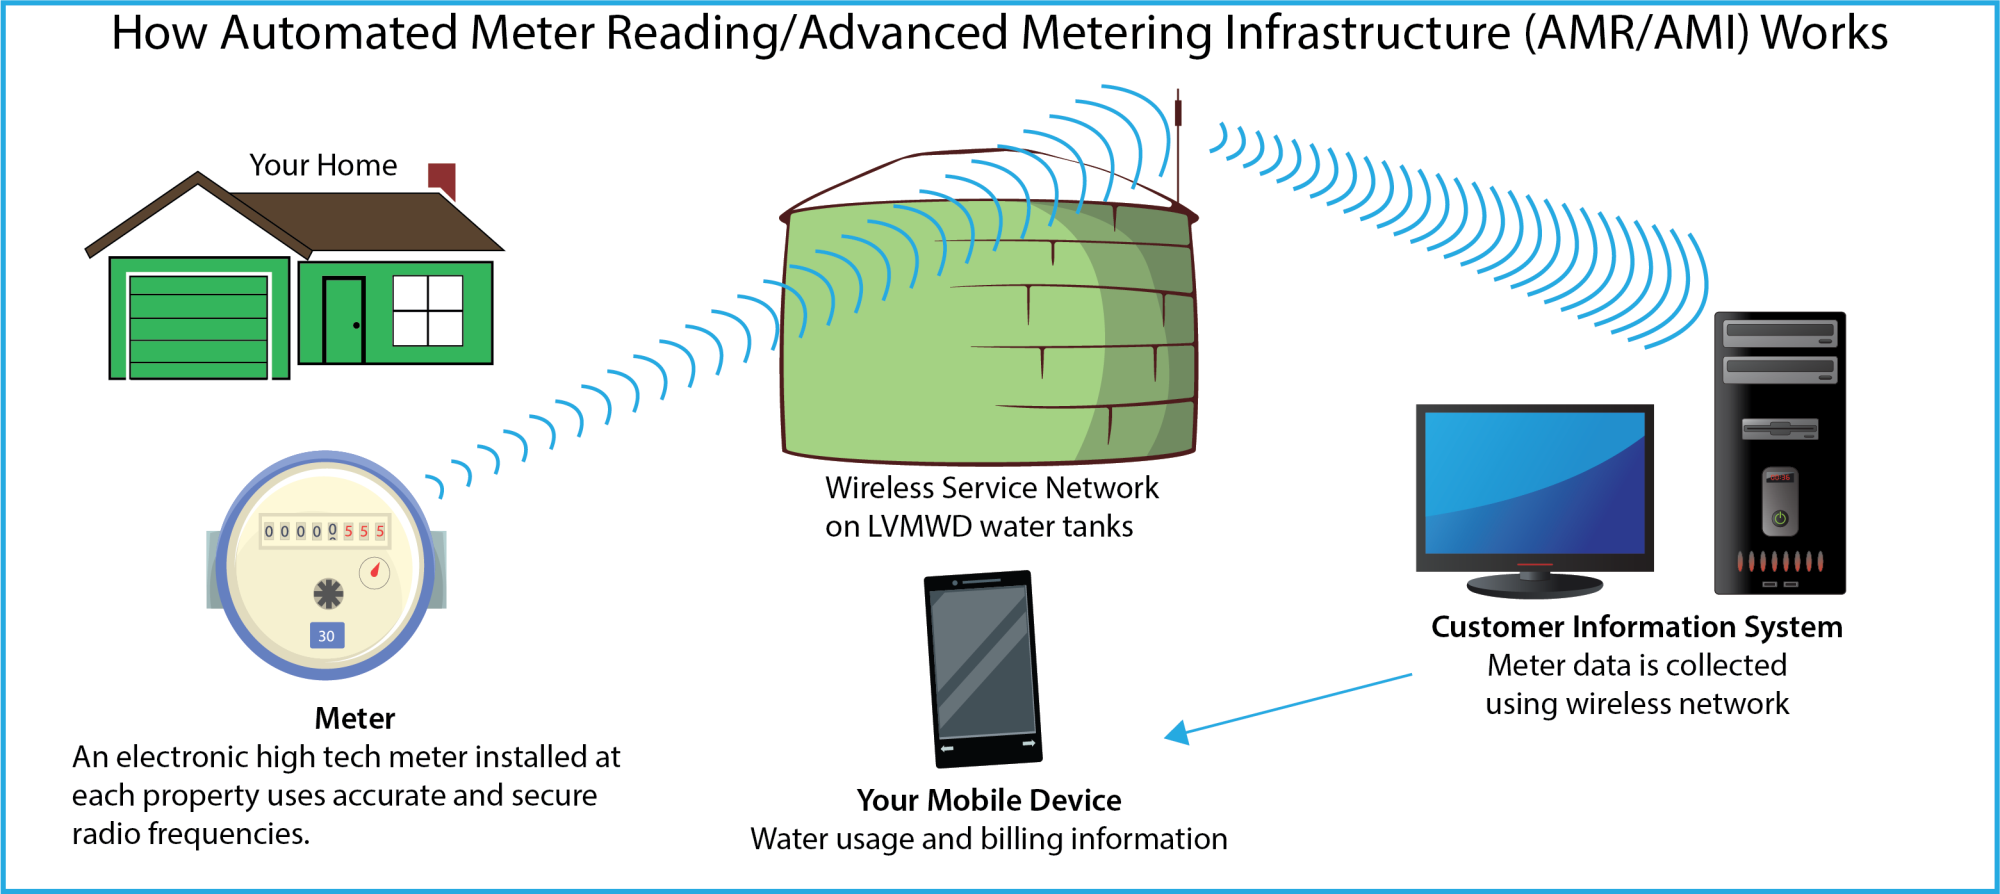 AMR-AMI - How Automated Meter Reading/Advanced Metering Inrastructure Works; image of home, water meter, wireless newtwork on LVMWD water tanks, Customer Information System to your mobile device.